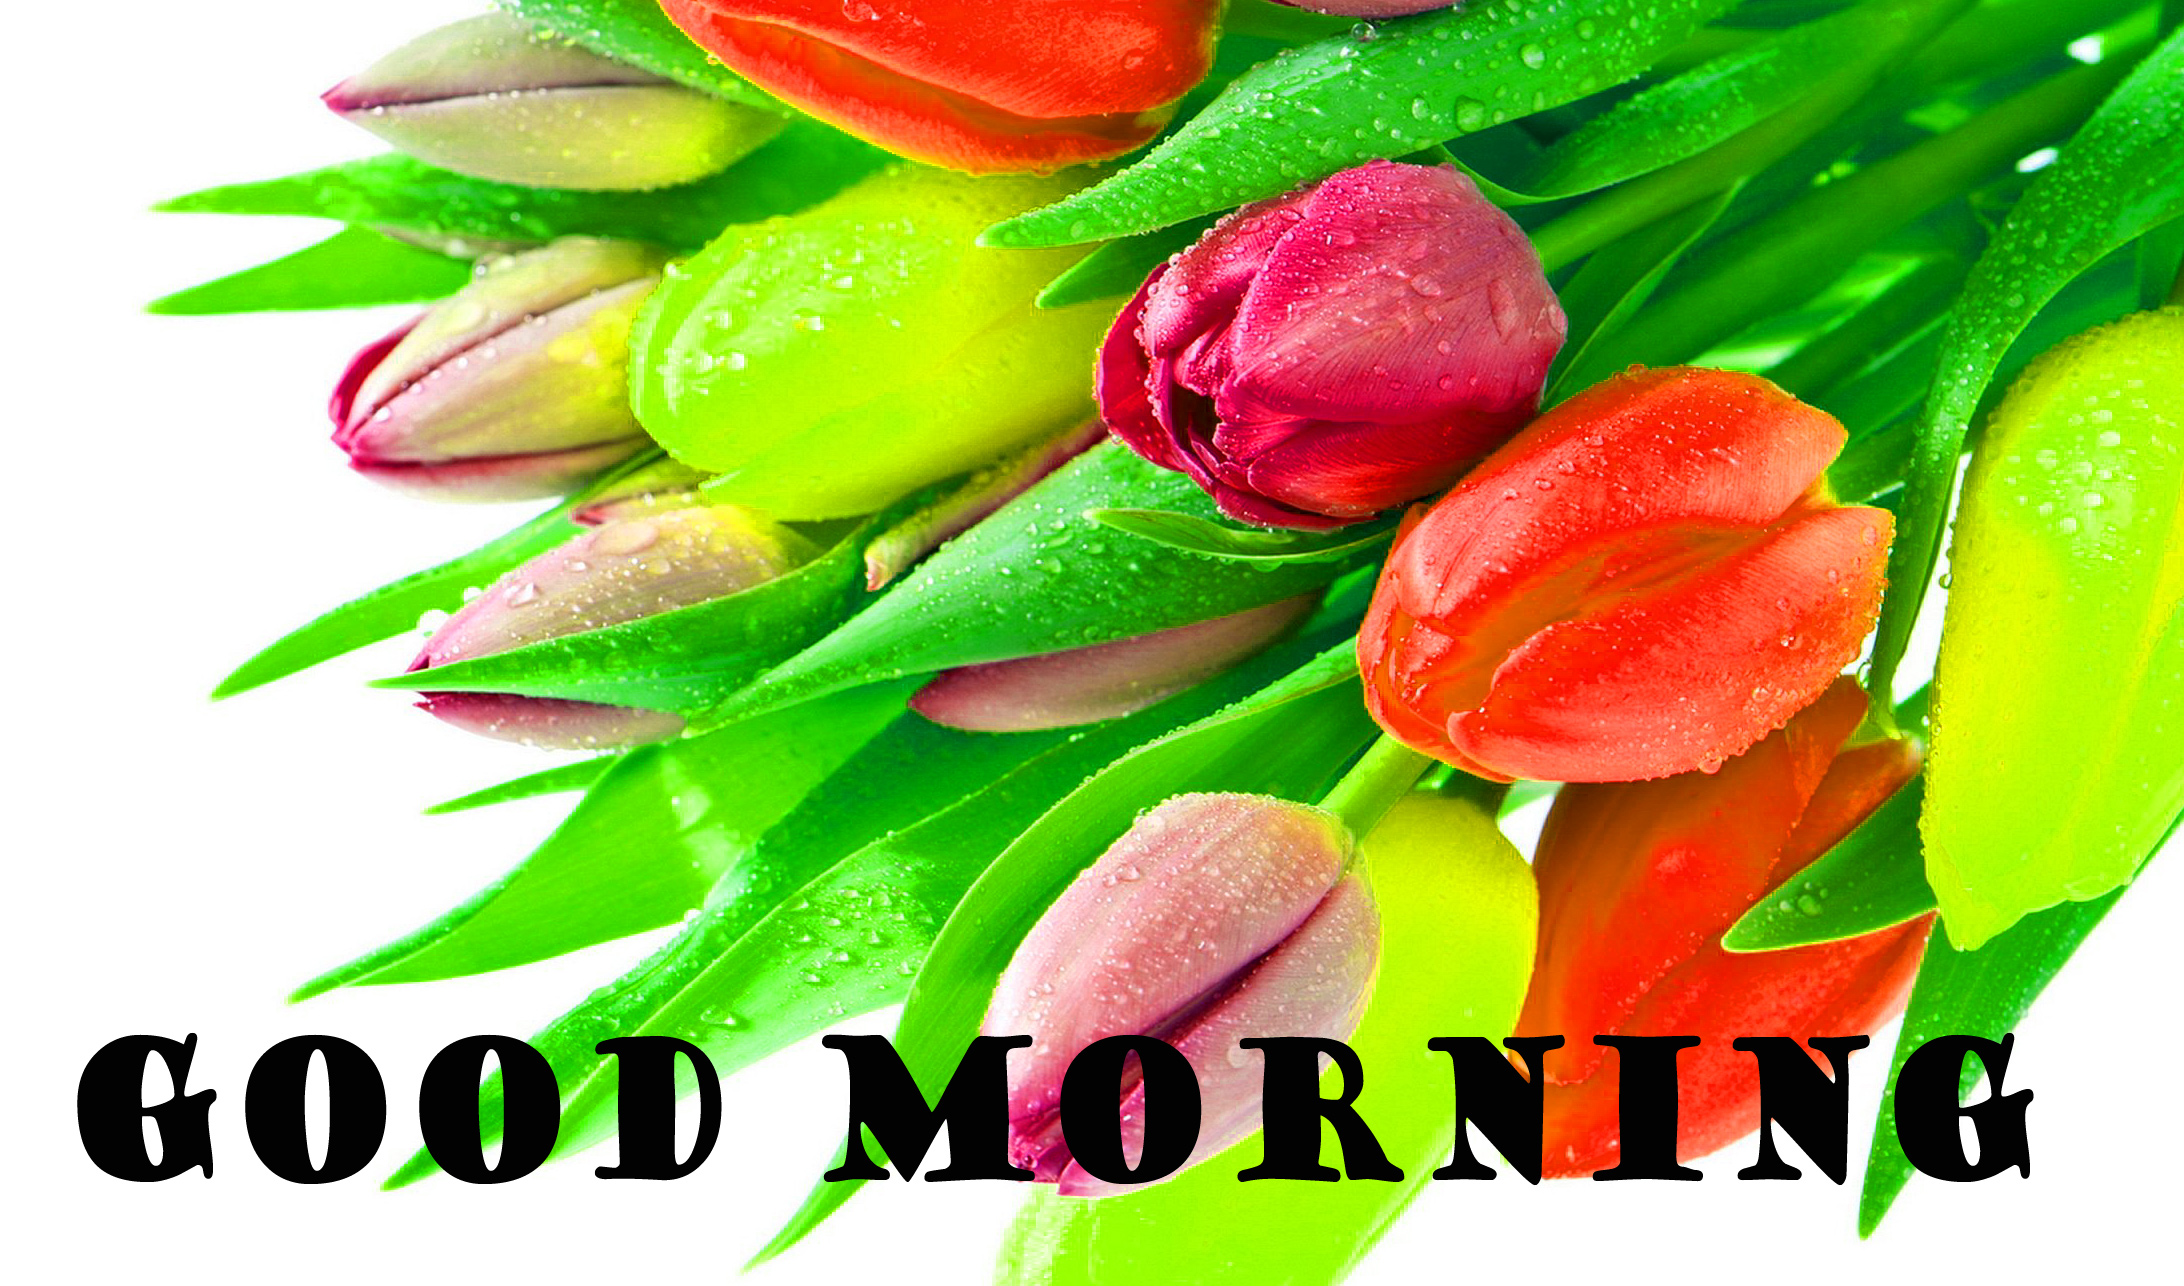 Good Morning Flowers Wallpaper Pictures Images HD For Whatsapp